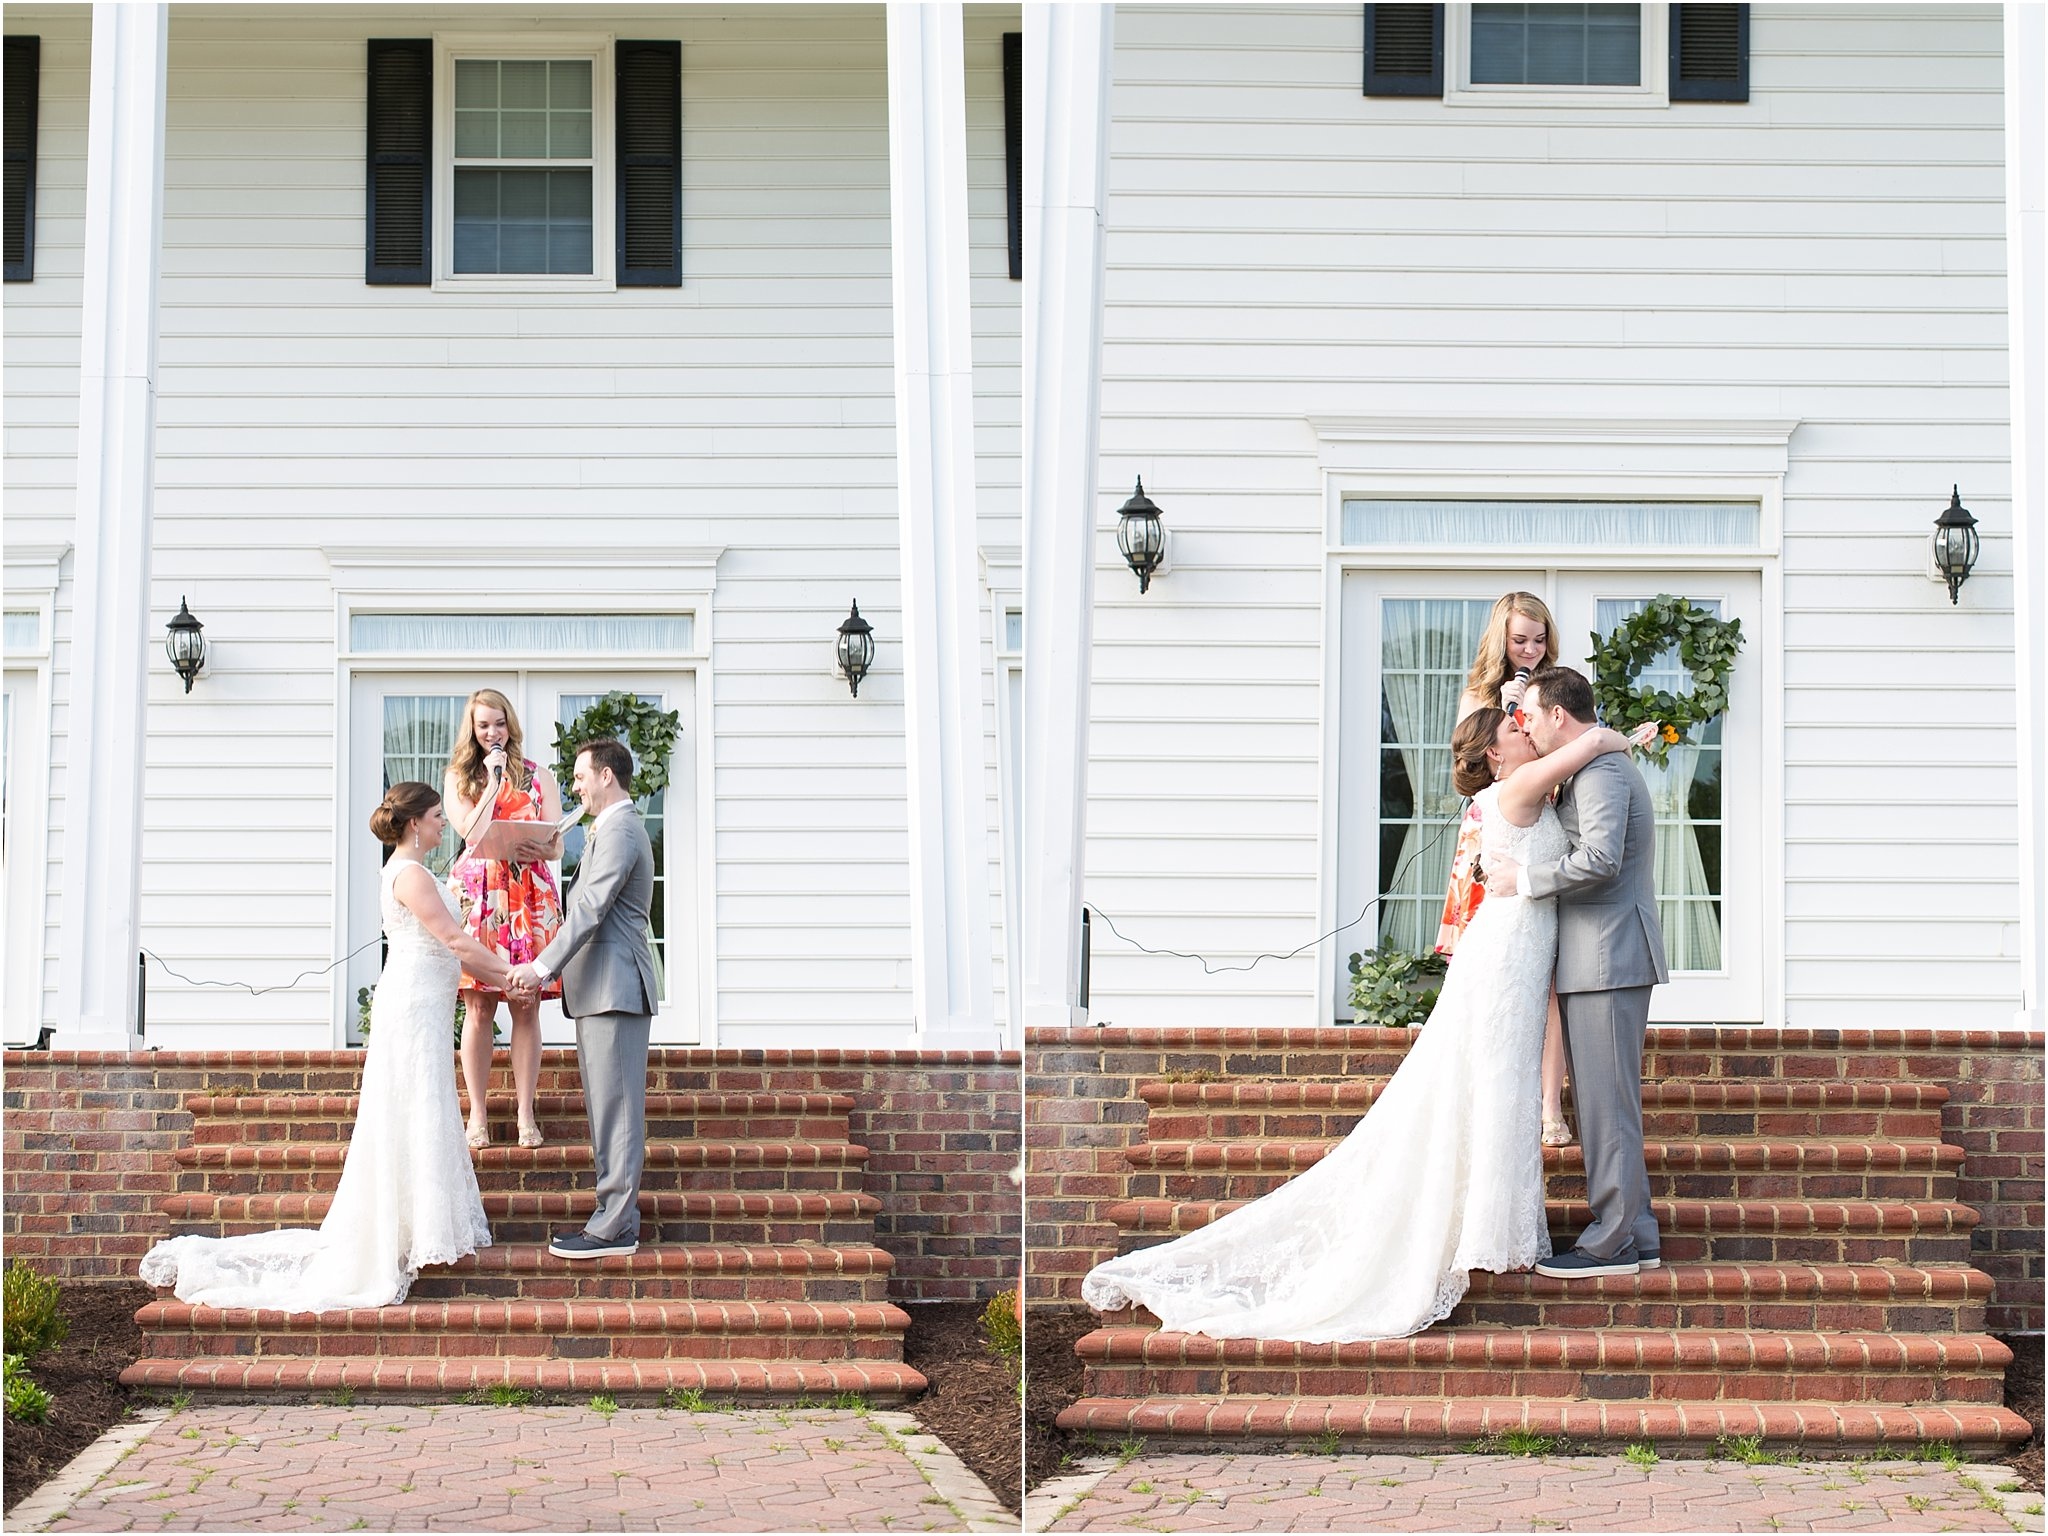 jessica_ryan_photography_holly_ridge_manor_wedding_roost_flowers_jamie_leigh_events_dhalia_edwards_candid_vibrant_wedding_colors_1300